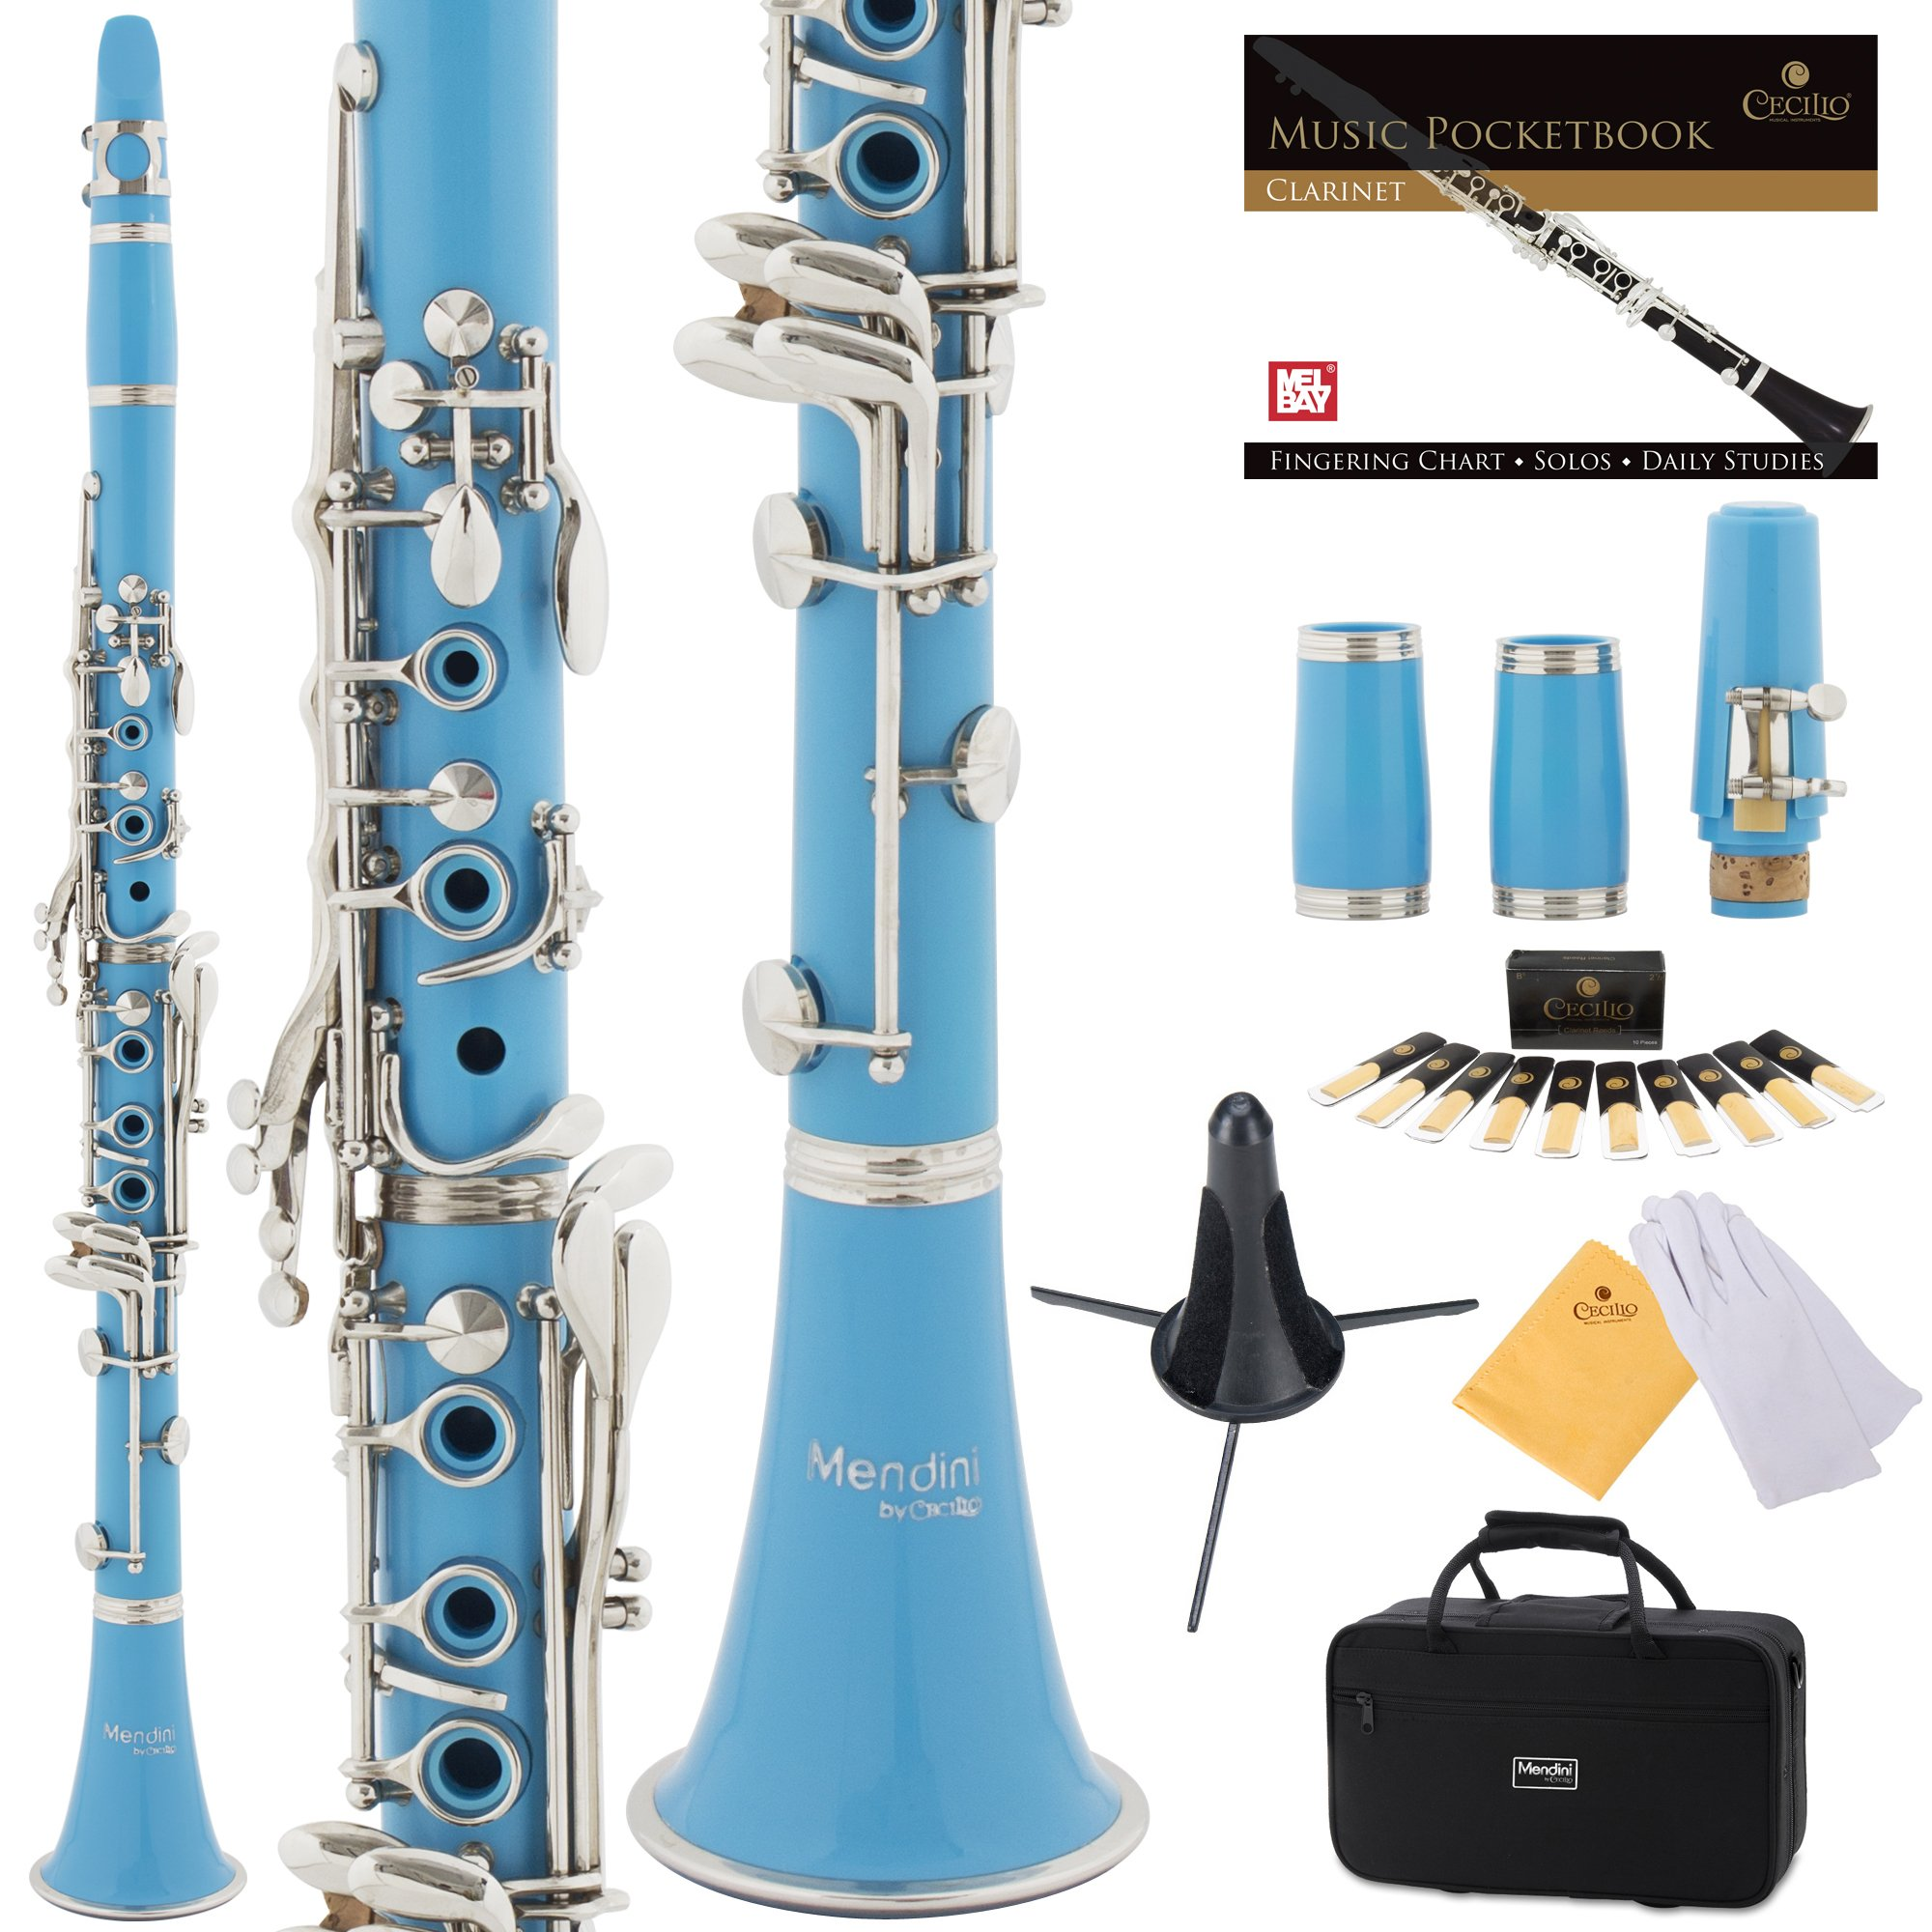 Mendini Sky Blue ABS B Flat Clarinet with 2 Barrels, Case, Stand, Pocketbook, Mouthpiece, 10 Reeds and More, MCT-2SB+SD+PB